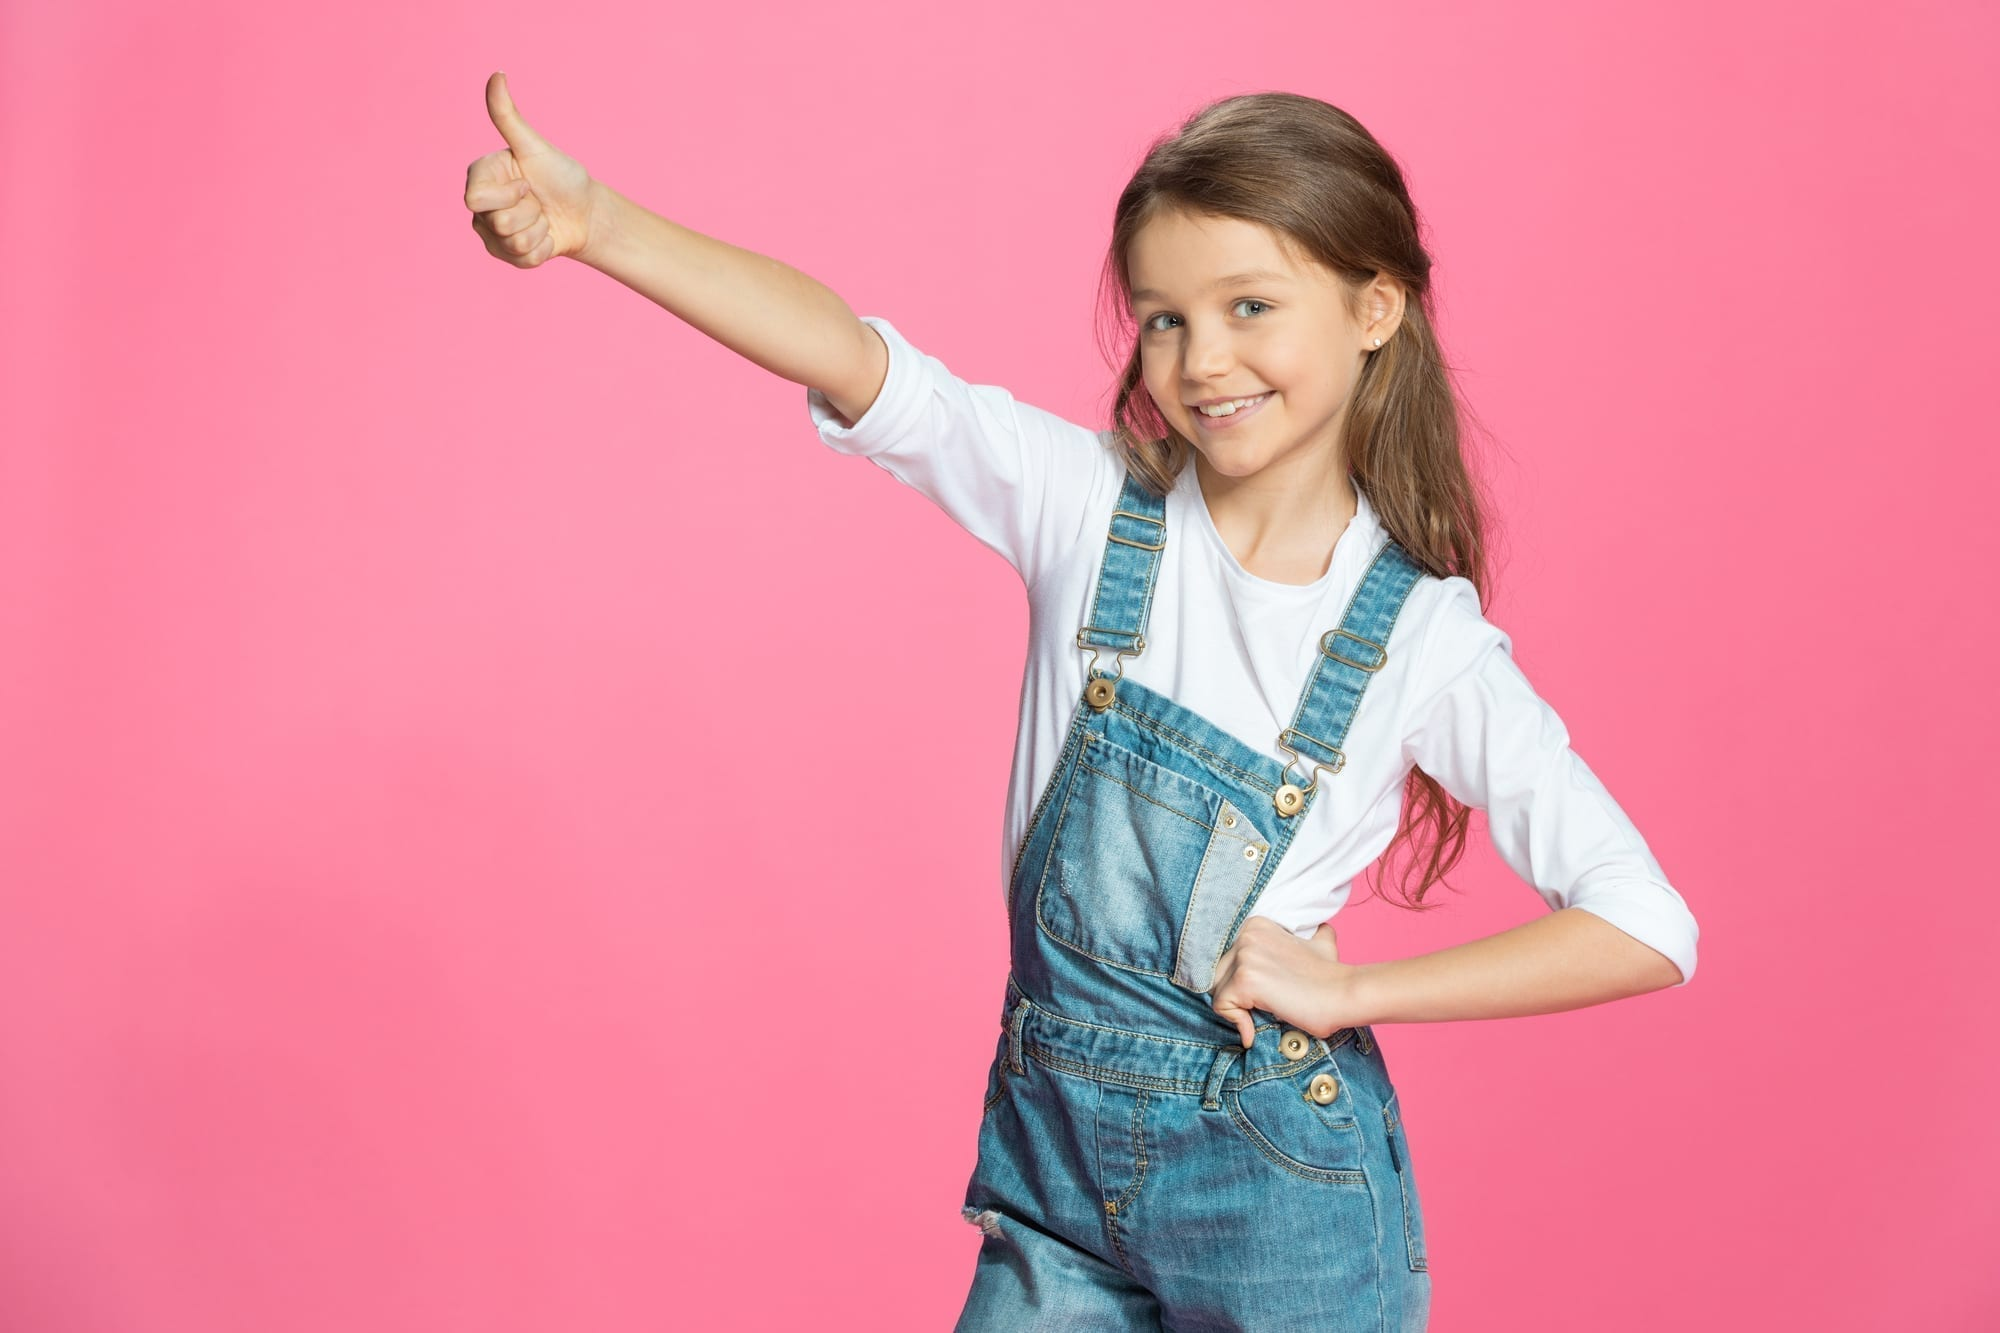 little girl with thumbs up on pink background